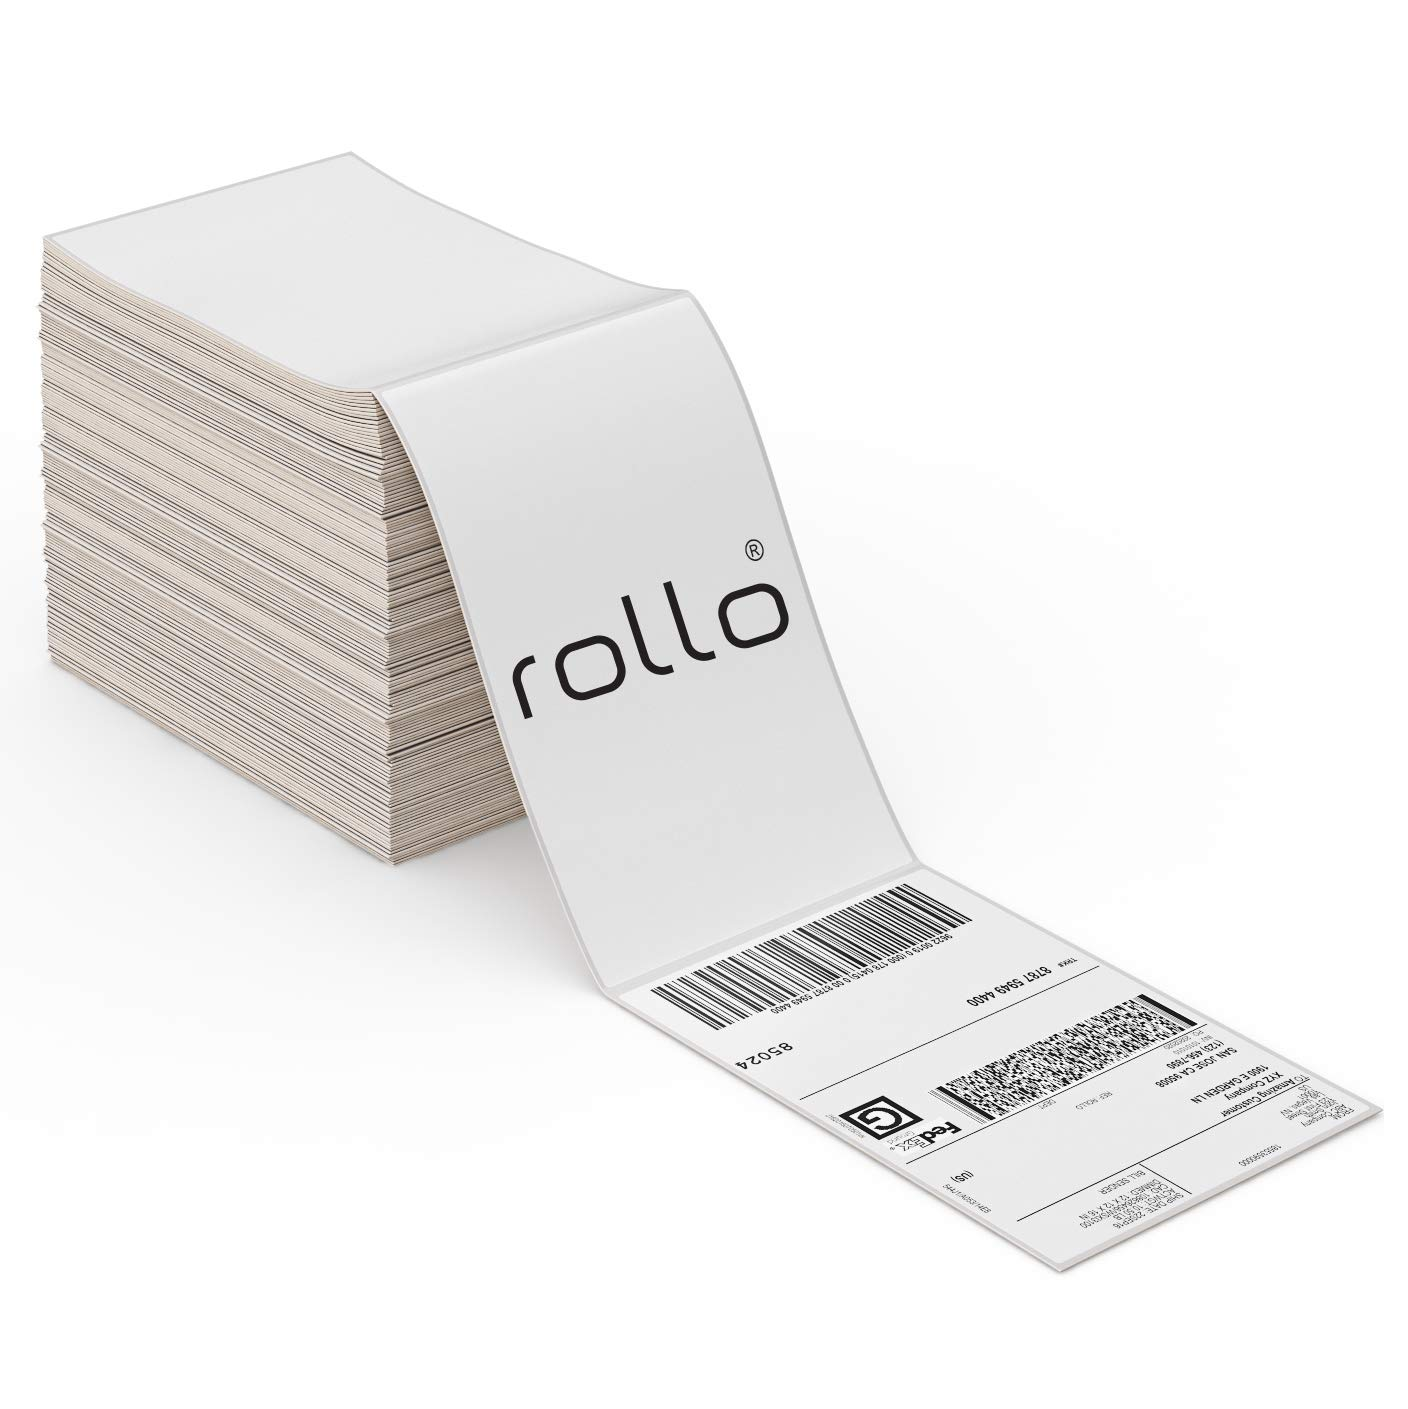 ROLLO Thermal Direct Shipping Label (Pack of 500 4x6 Fan-Fold Labels) - Commercial Grade: Industrial & Scientific